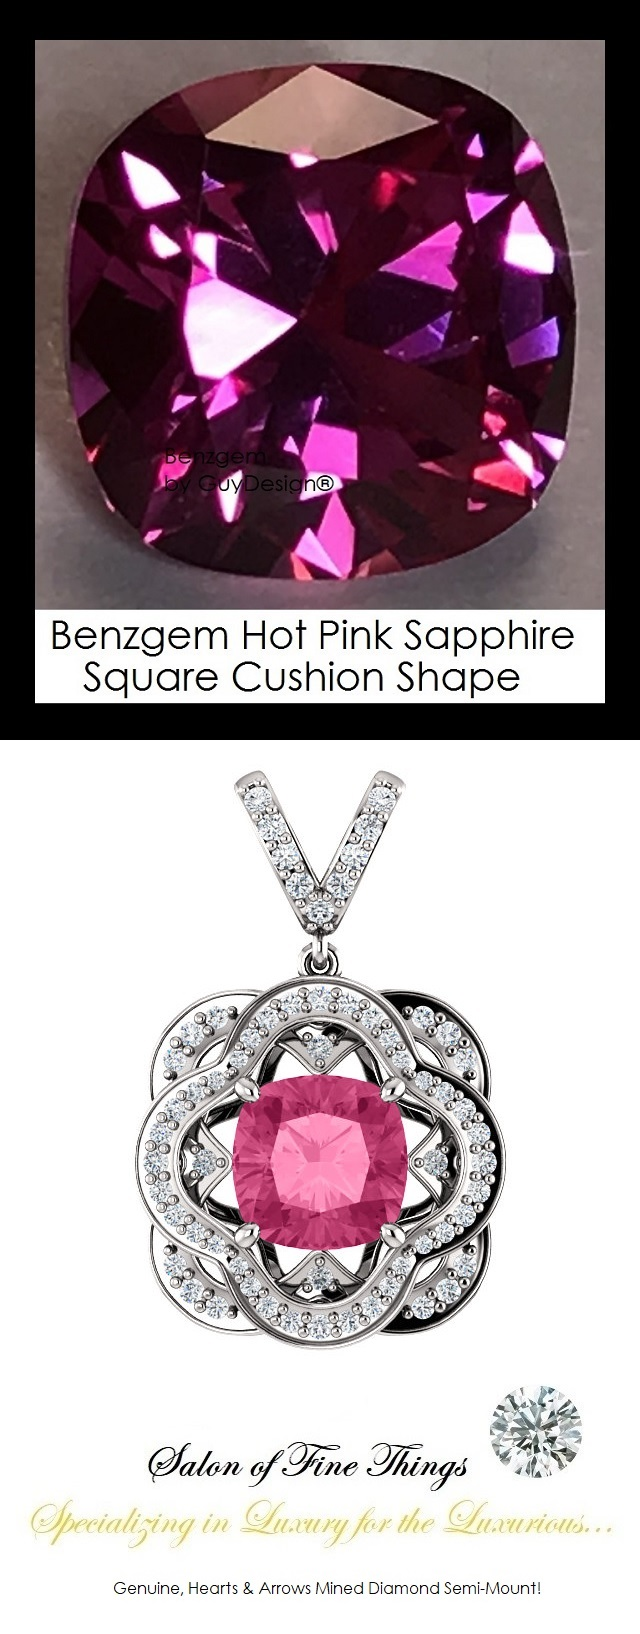 a-guydesign-opulent-platinum-pendant-necklace-dg121689.91020000.86121.9-a-cushion-cut-hot-pink-corundum-sapphire-lab-grown-by-benzgem.-1.jpg